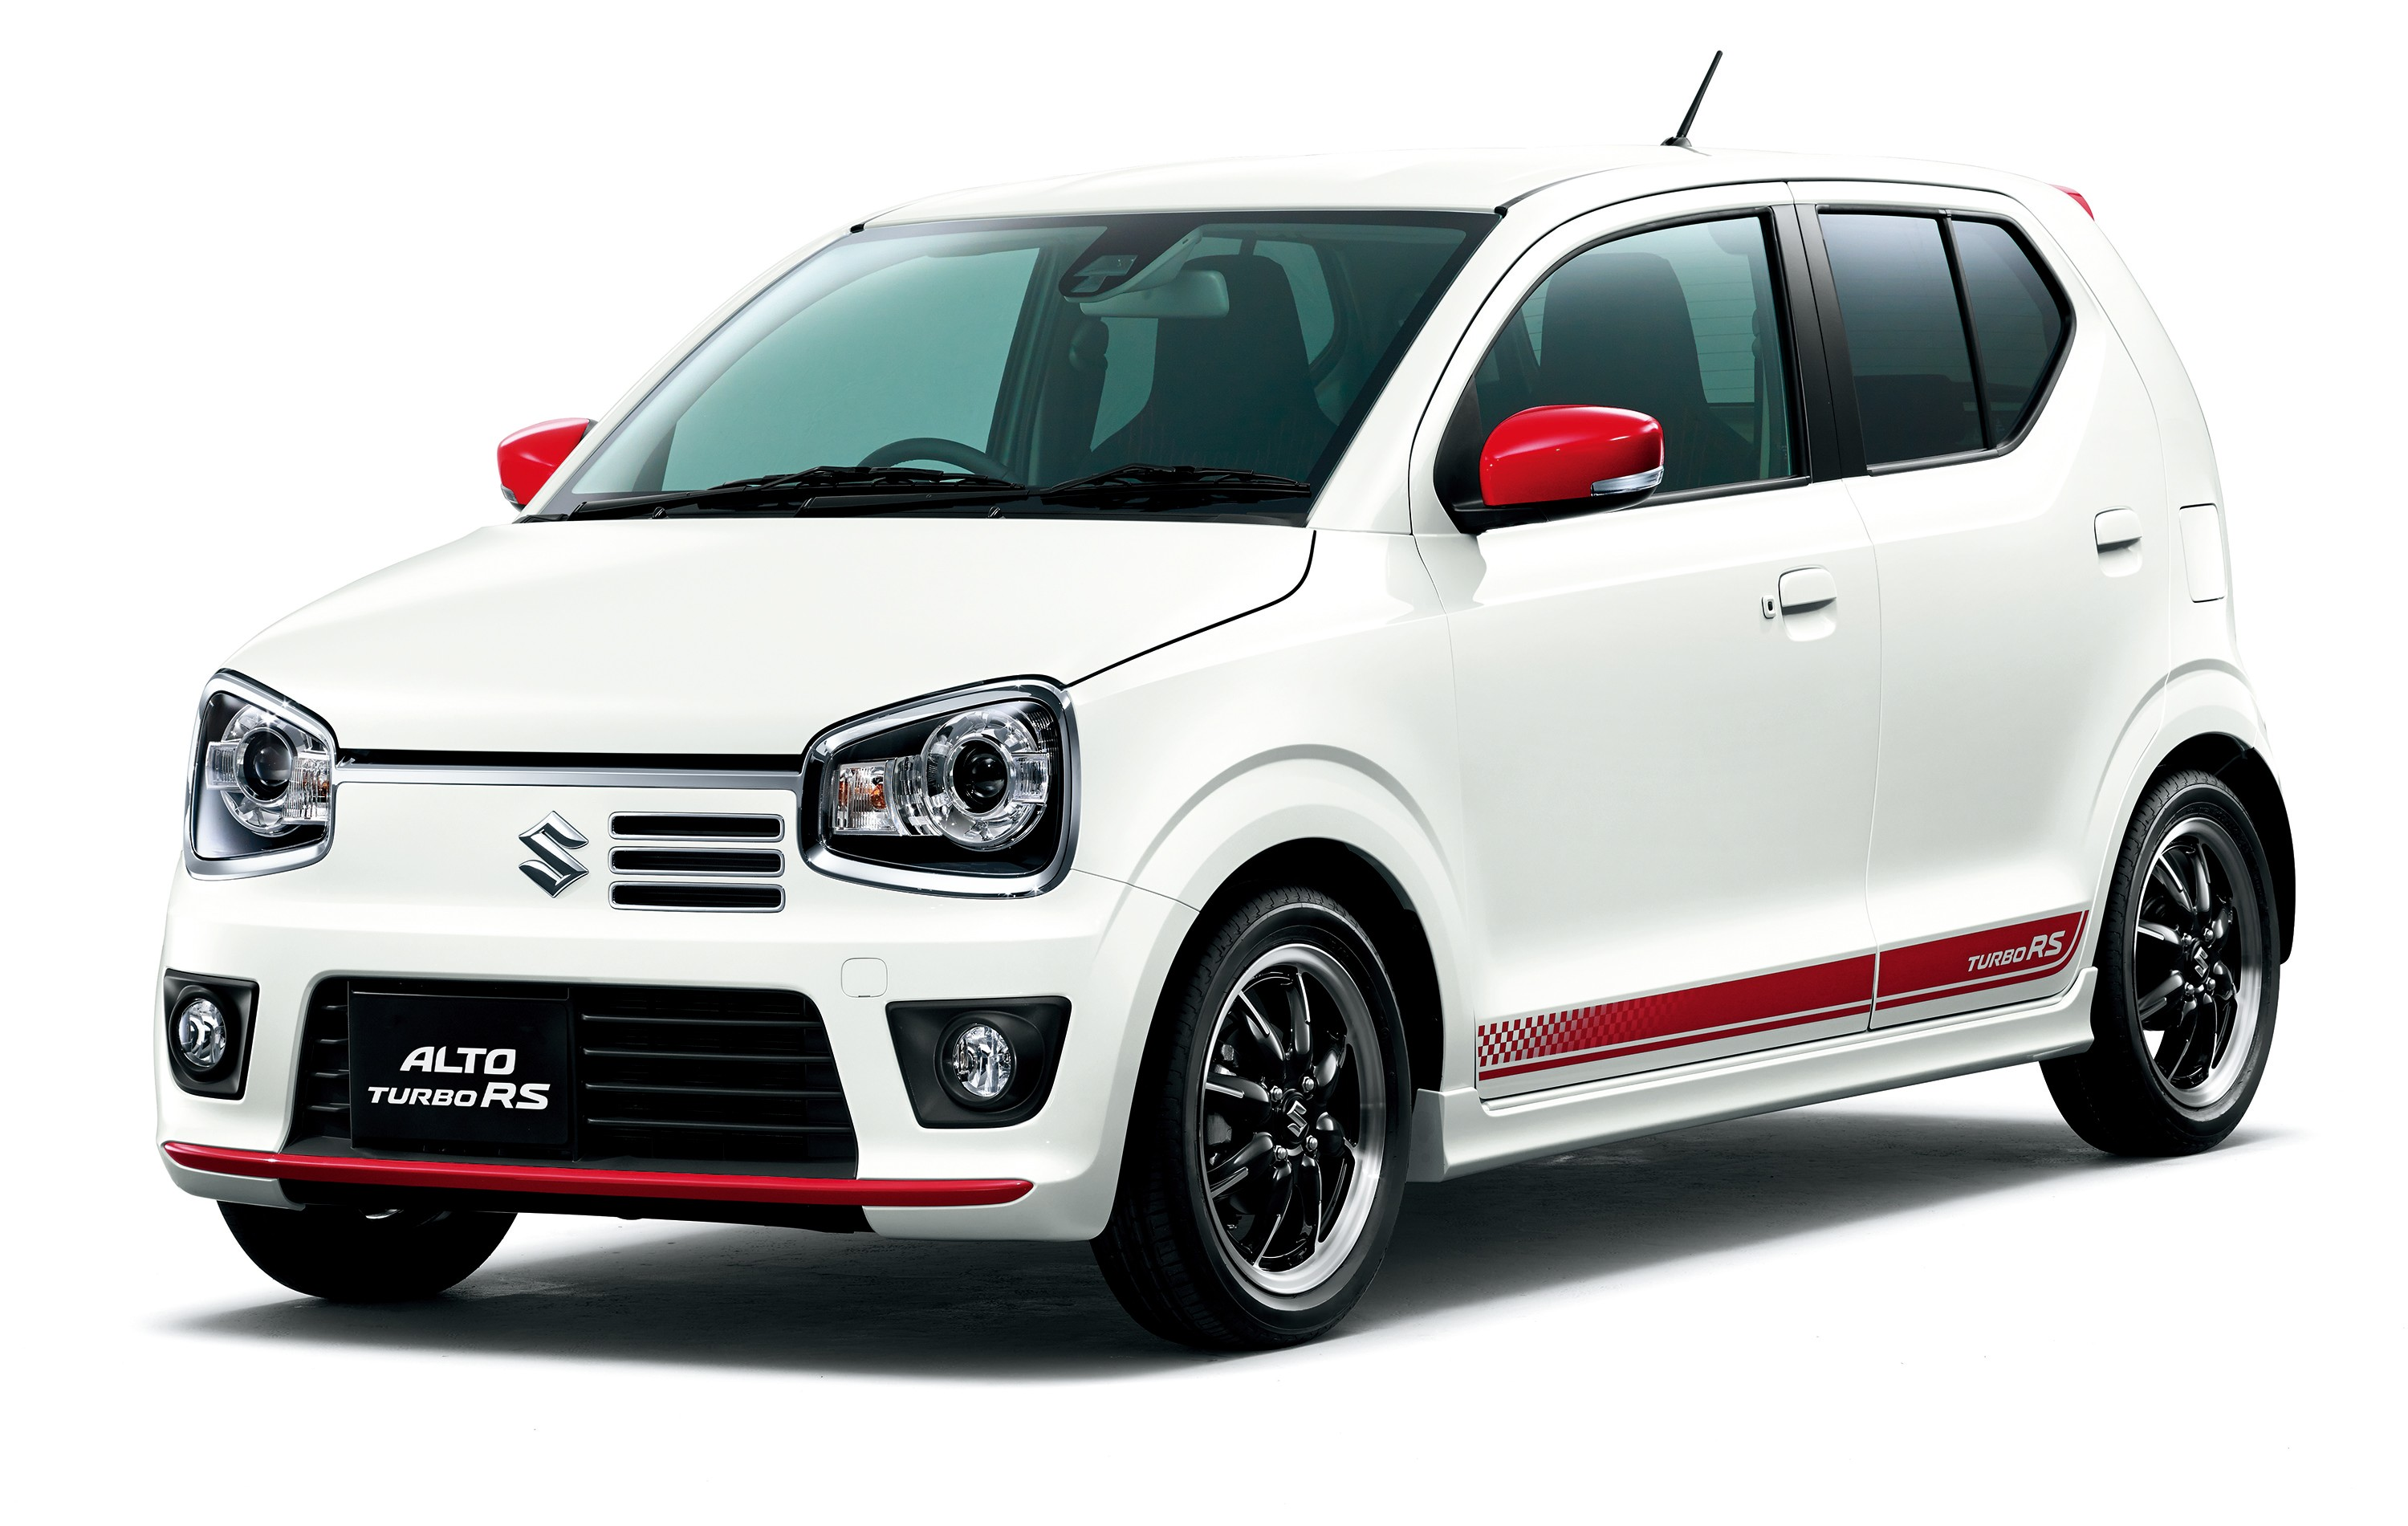 2015 Suzuki Alto Turbo Rs Is Pocket Racer From Japan Autoevolution